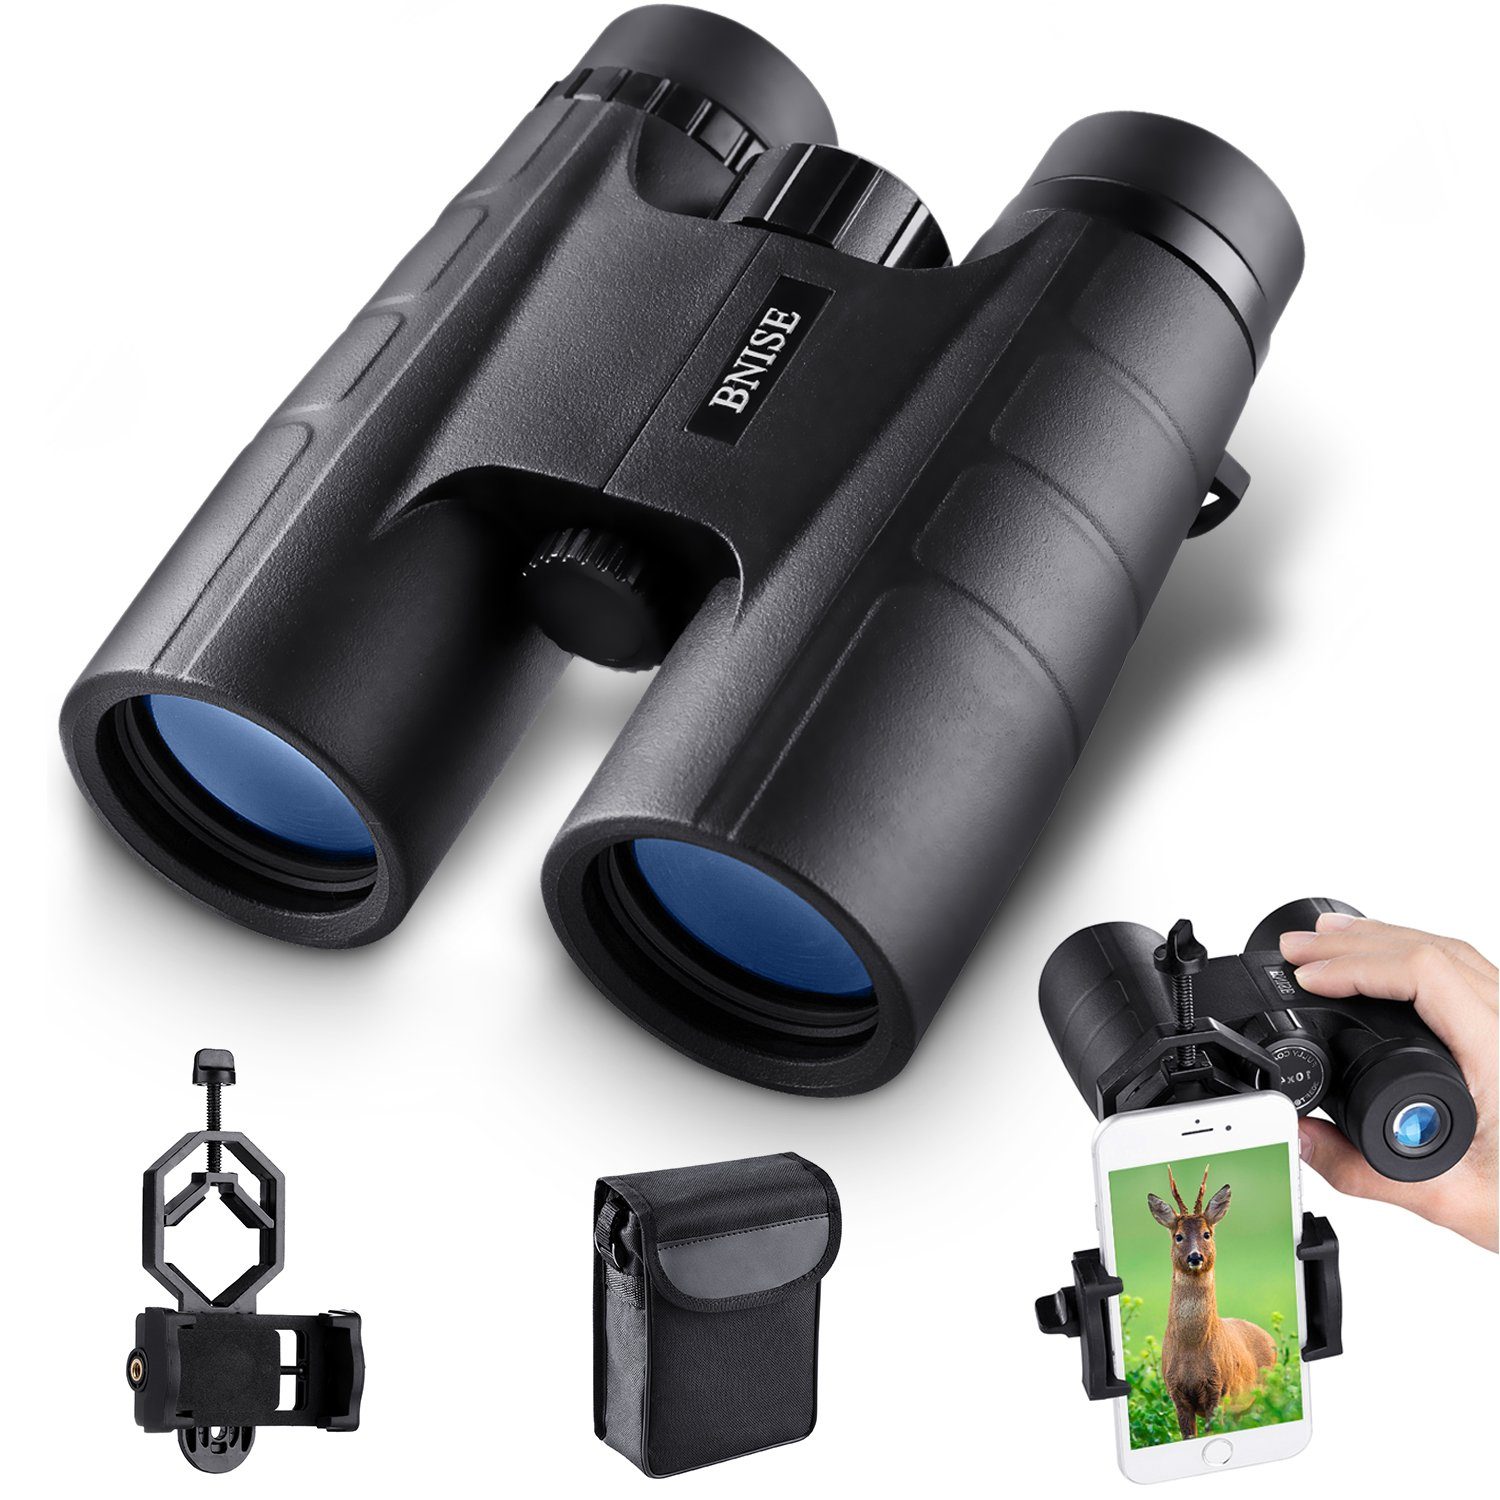 BNISE Binoculars for Adults Compact, 10X42 HD Professional, BAK4 Prism FMC Lens, Suitable for Outdoor Travel, for Bird Watching, for Hunting, Concerts, with Smartphone Adapter by BNISE